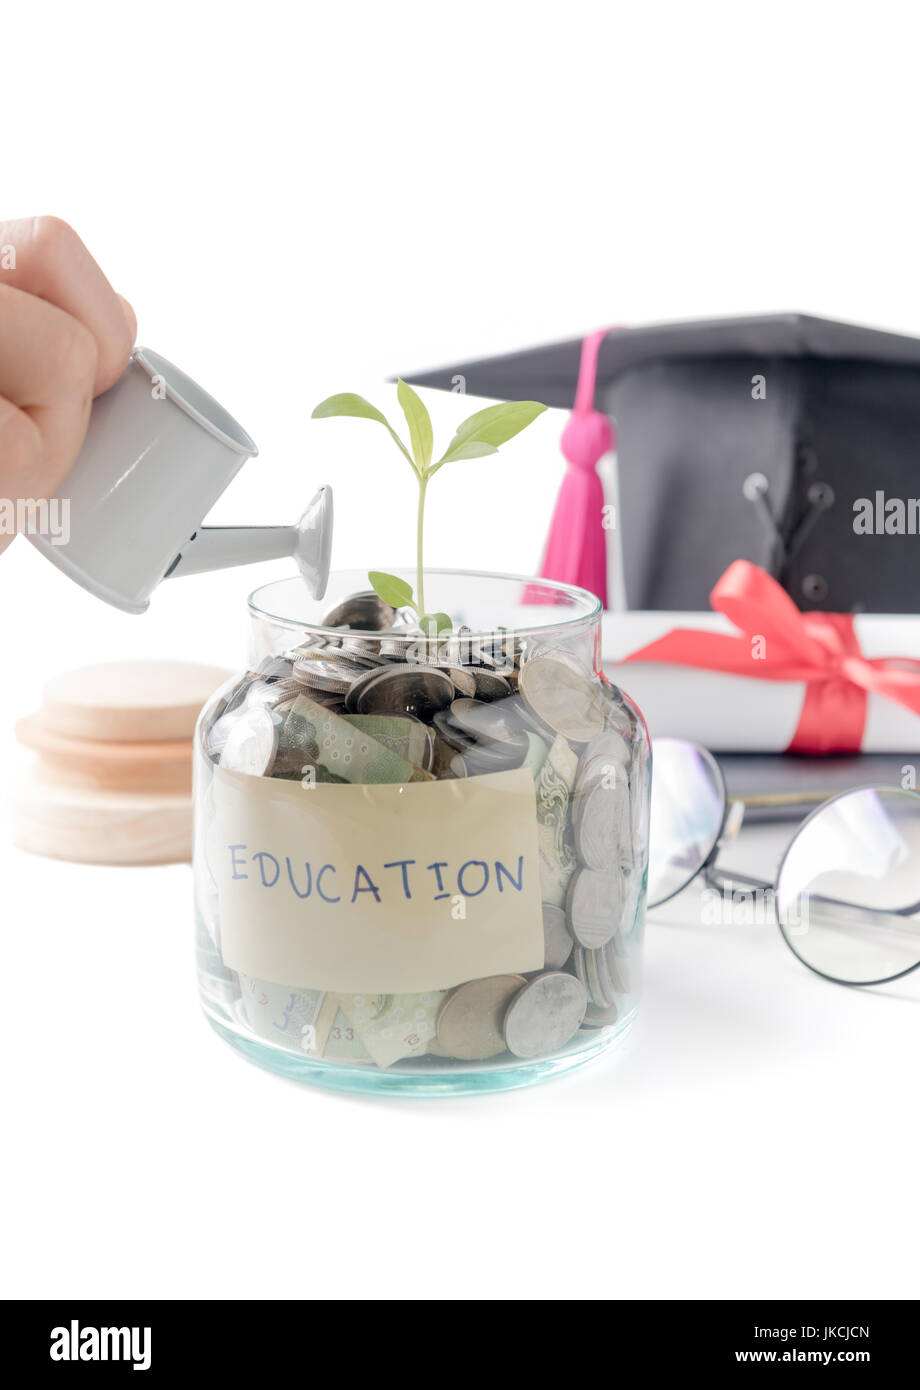 girl hand watering a tree growing out of silver coins on watering pod isolated on white background, education budget - Stock Image